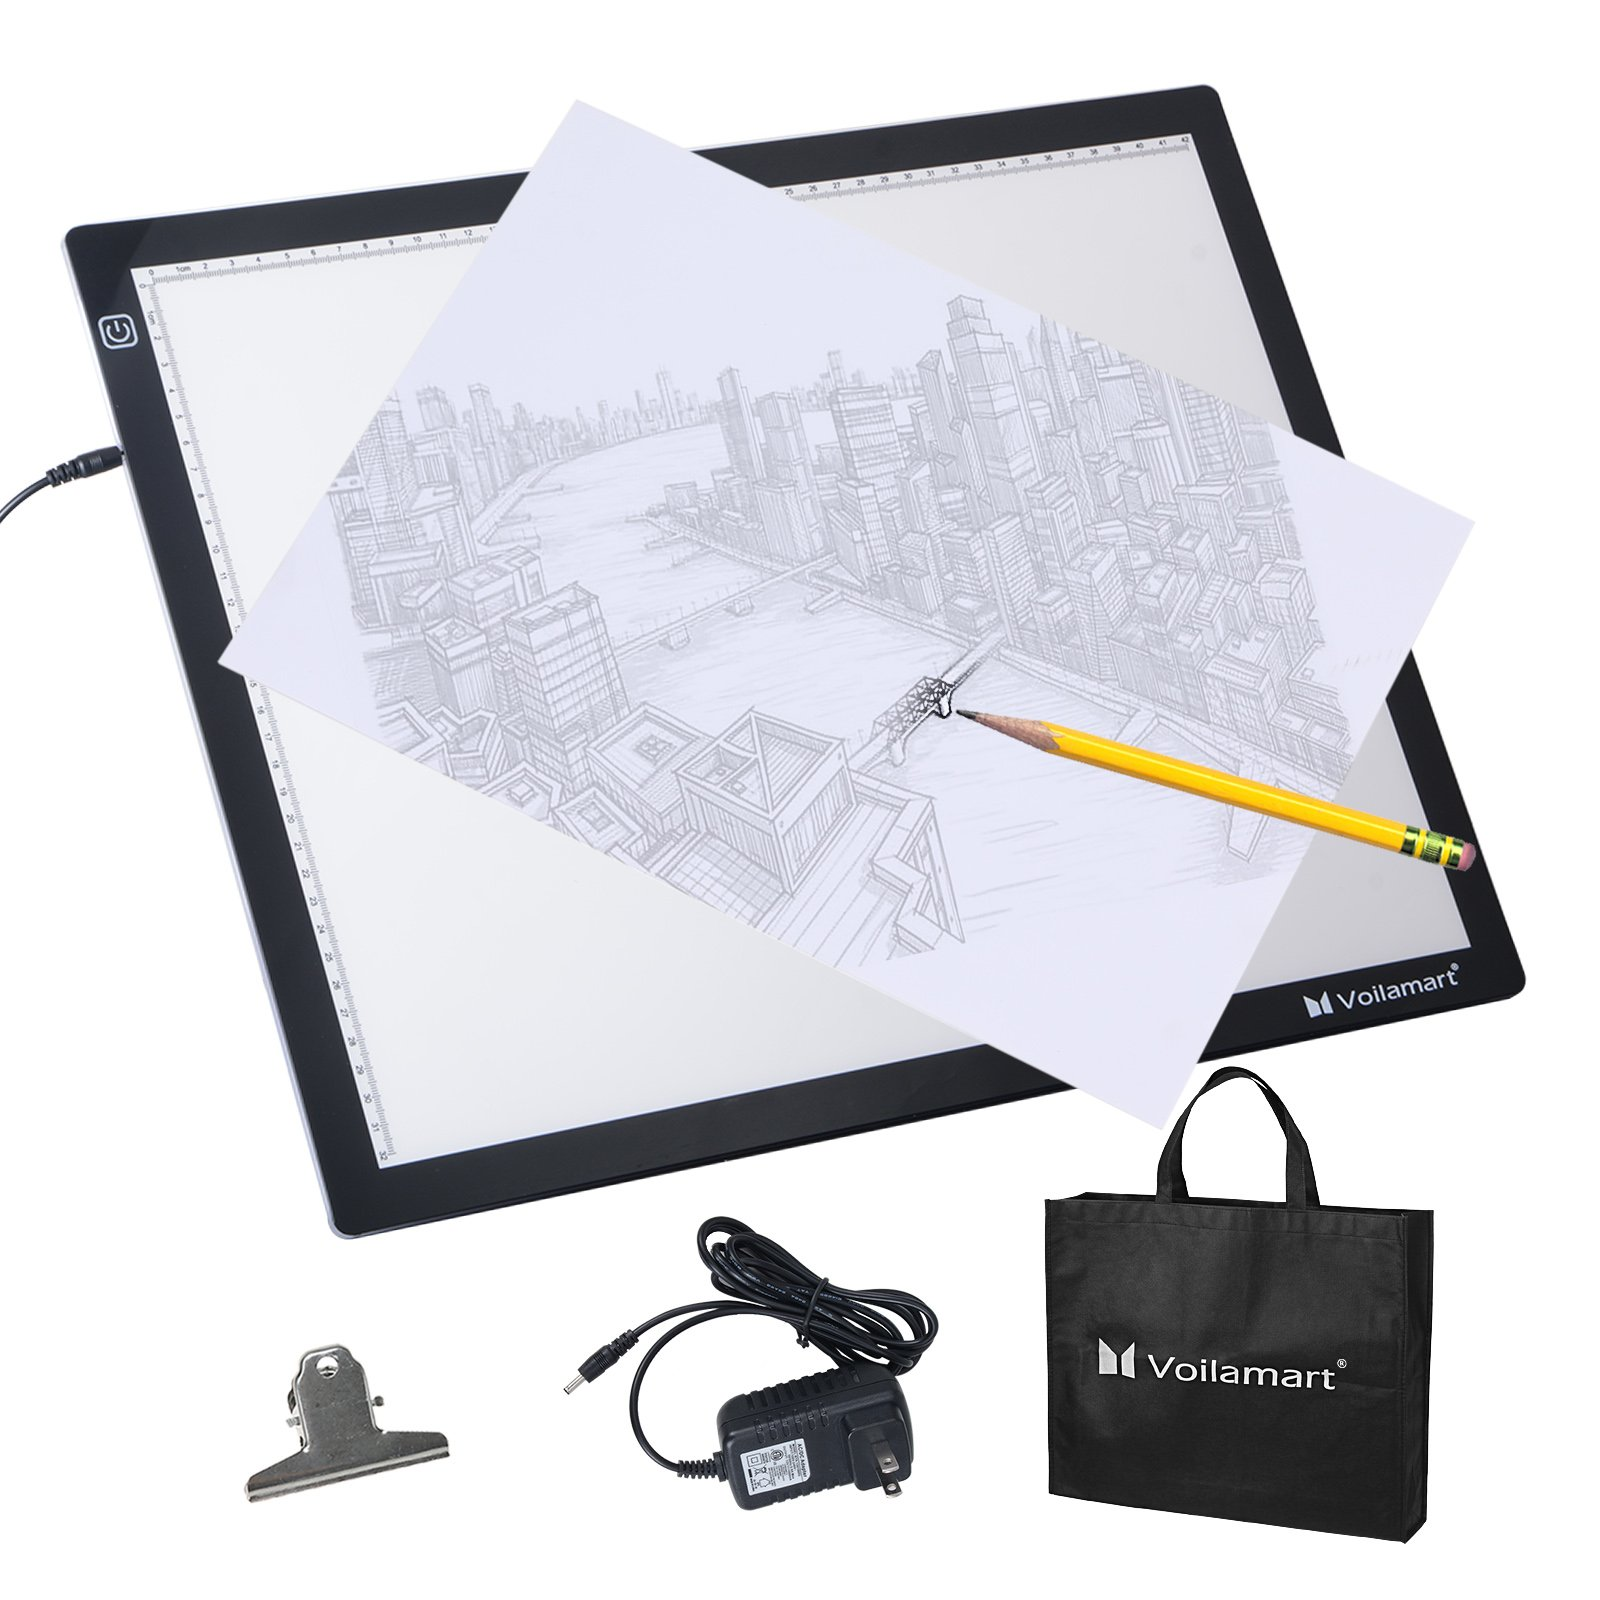 Voilamart A3 LED Light Box Tracer, 12V Ultra Bright Stepless Dimmable Brightness w/ Memory Function, Ultra-thin LED Tracing Art Craft Light Pad Light Board with Carry Case, for Artists Drawing Tattoo